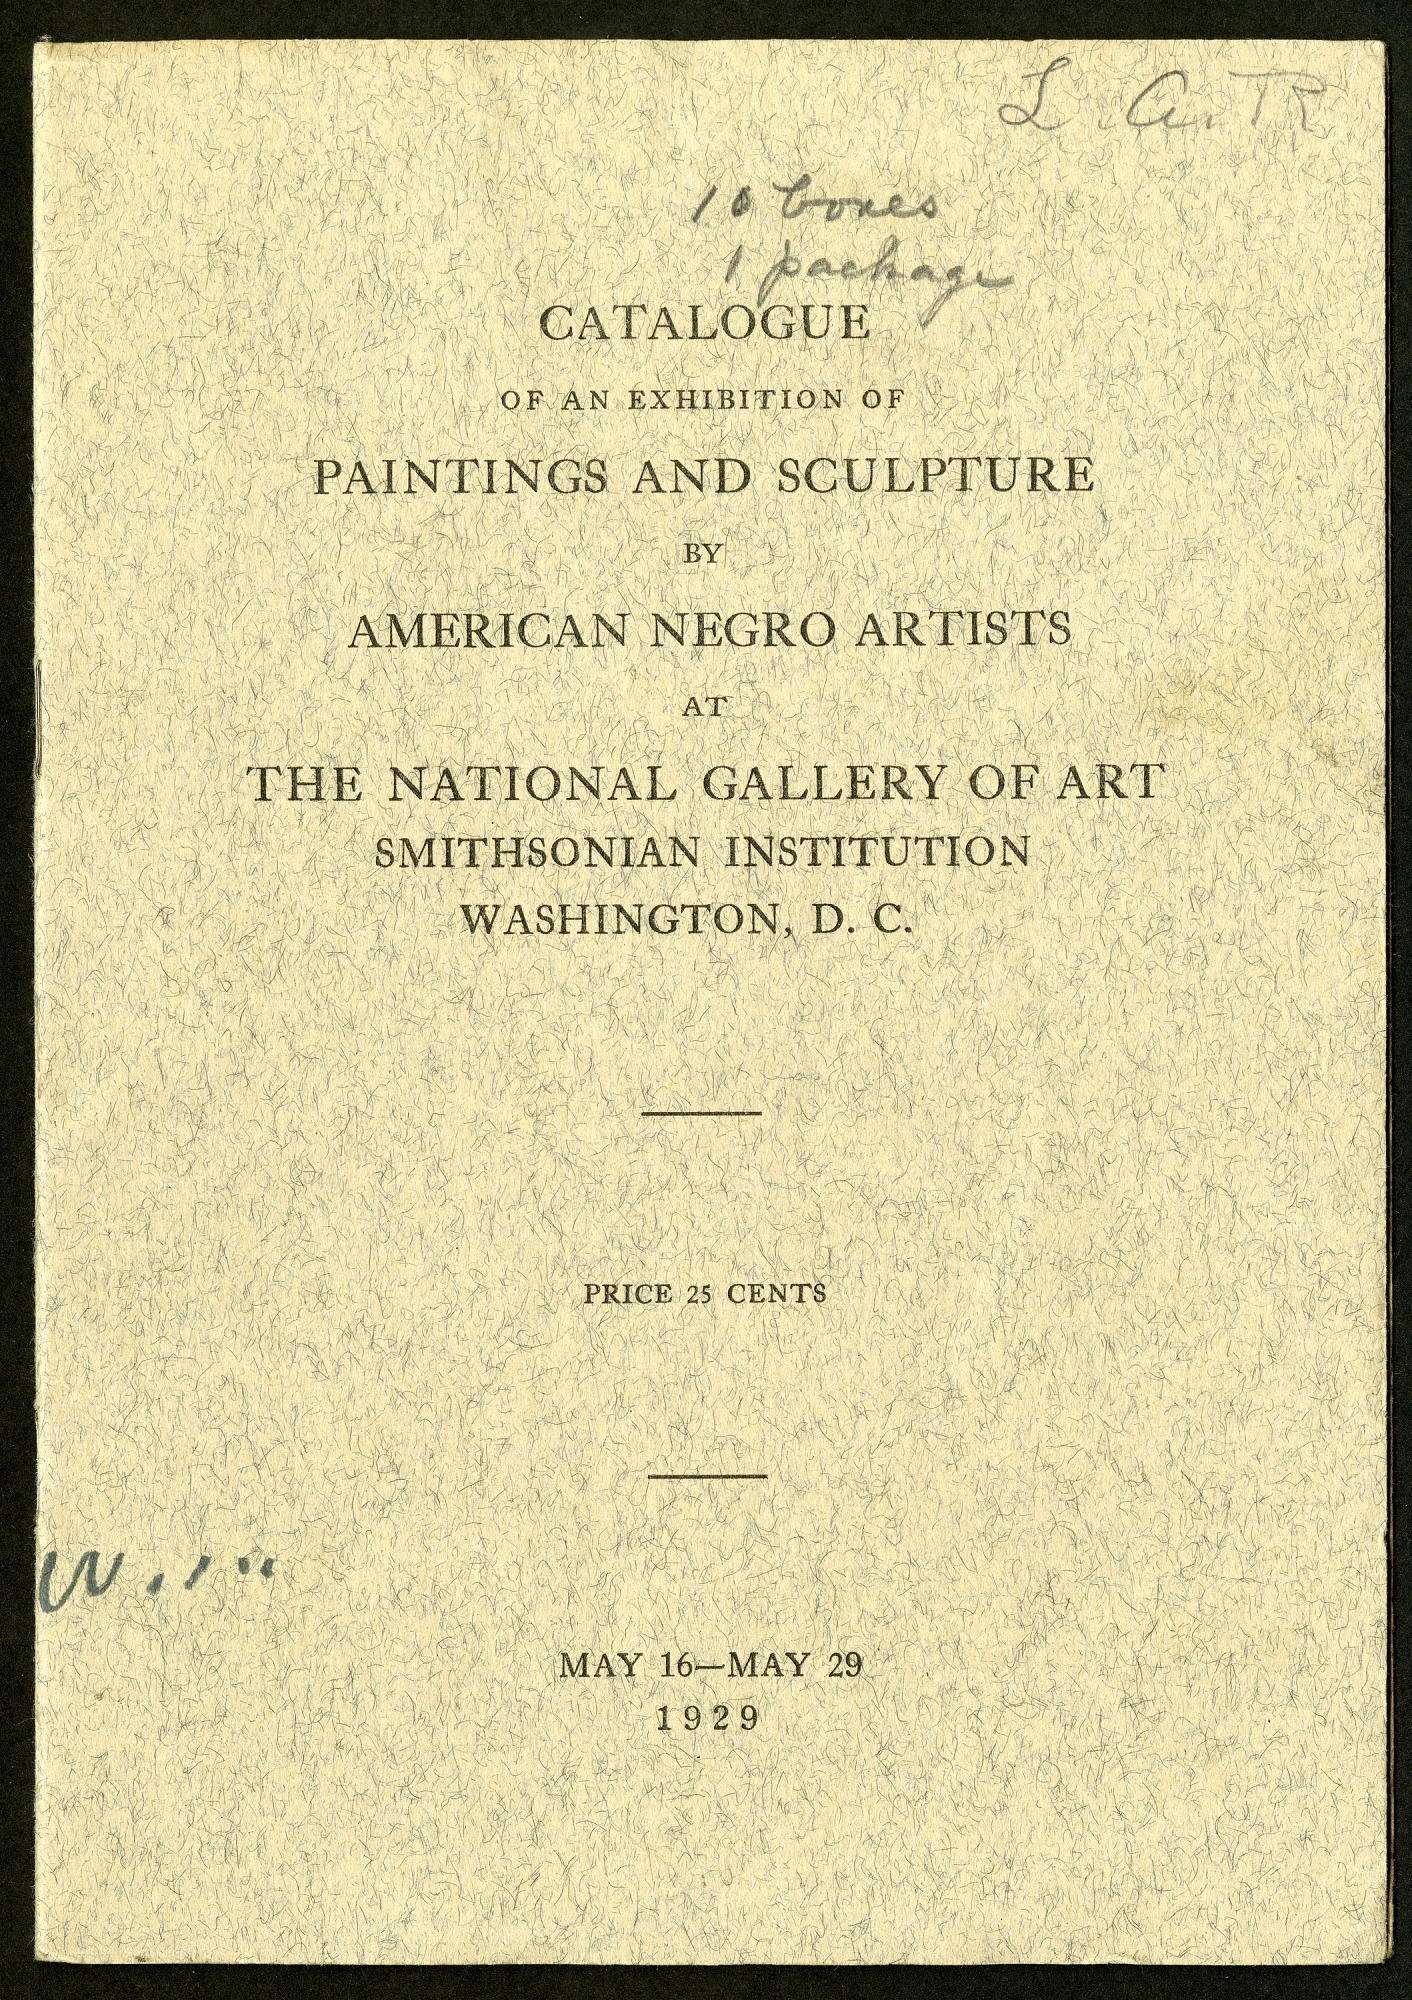 Catalogue of an Exhibition of Paintings and Sculpture by American Negro Artists at the National Gallery of Art